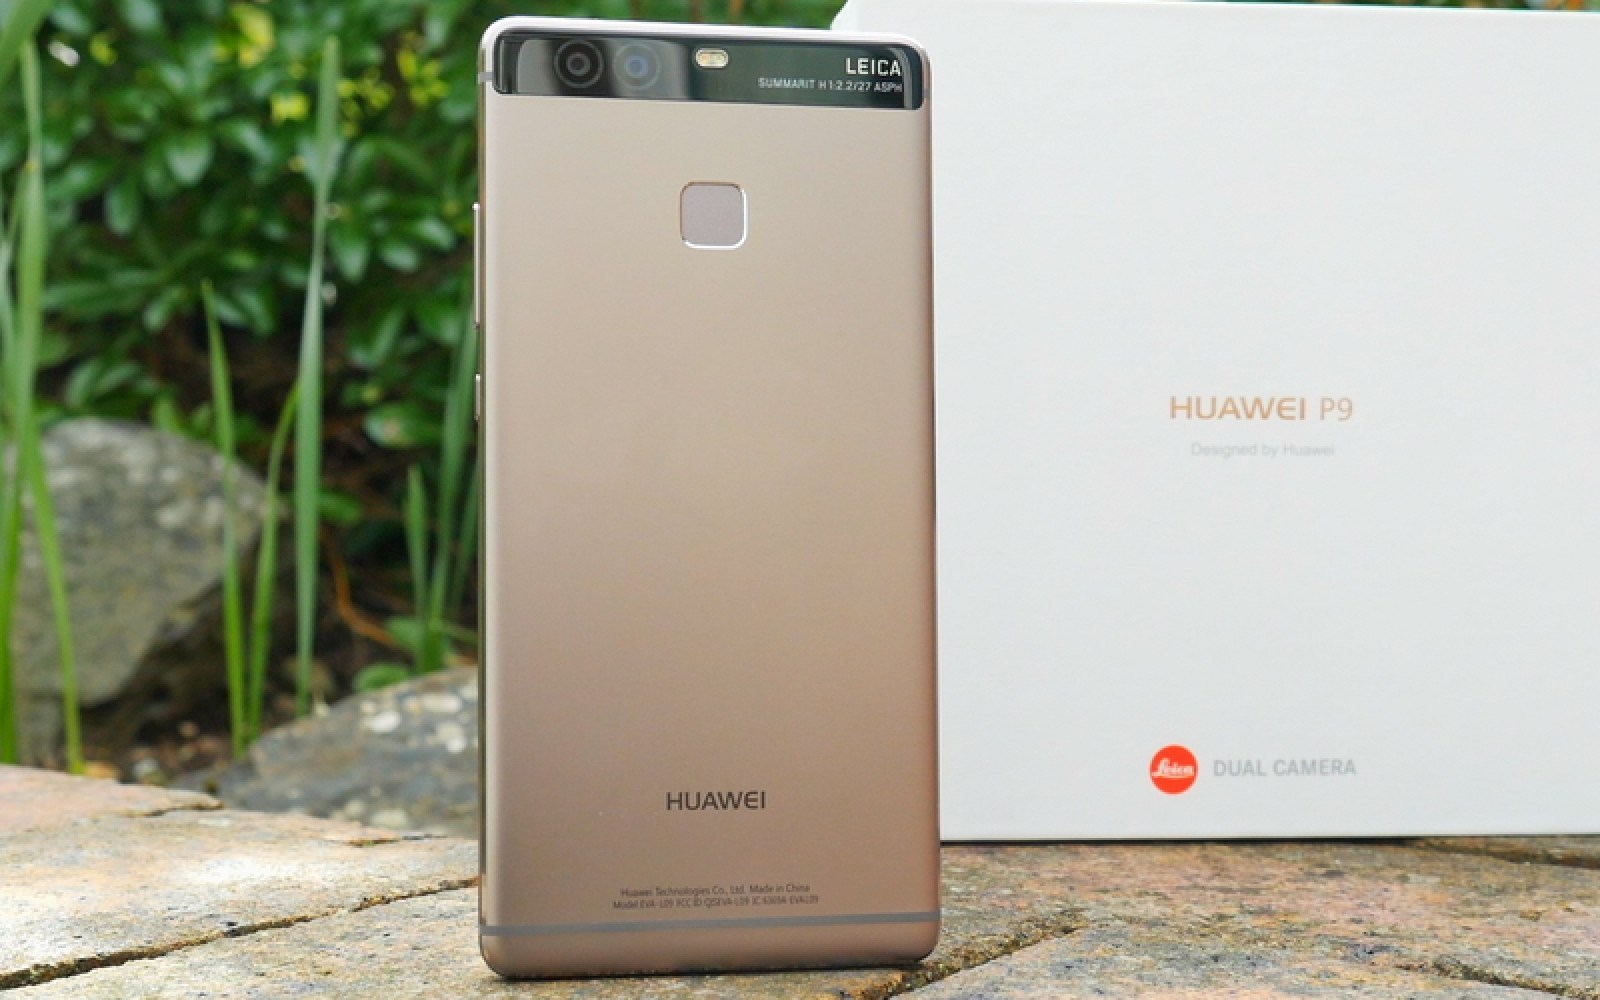 Huawei's P9 flagship is launching with P2i liquid repellant nanotechnology